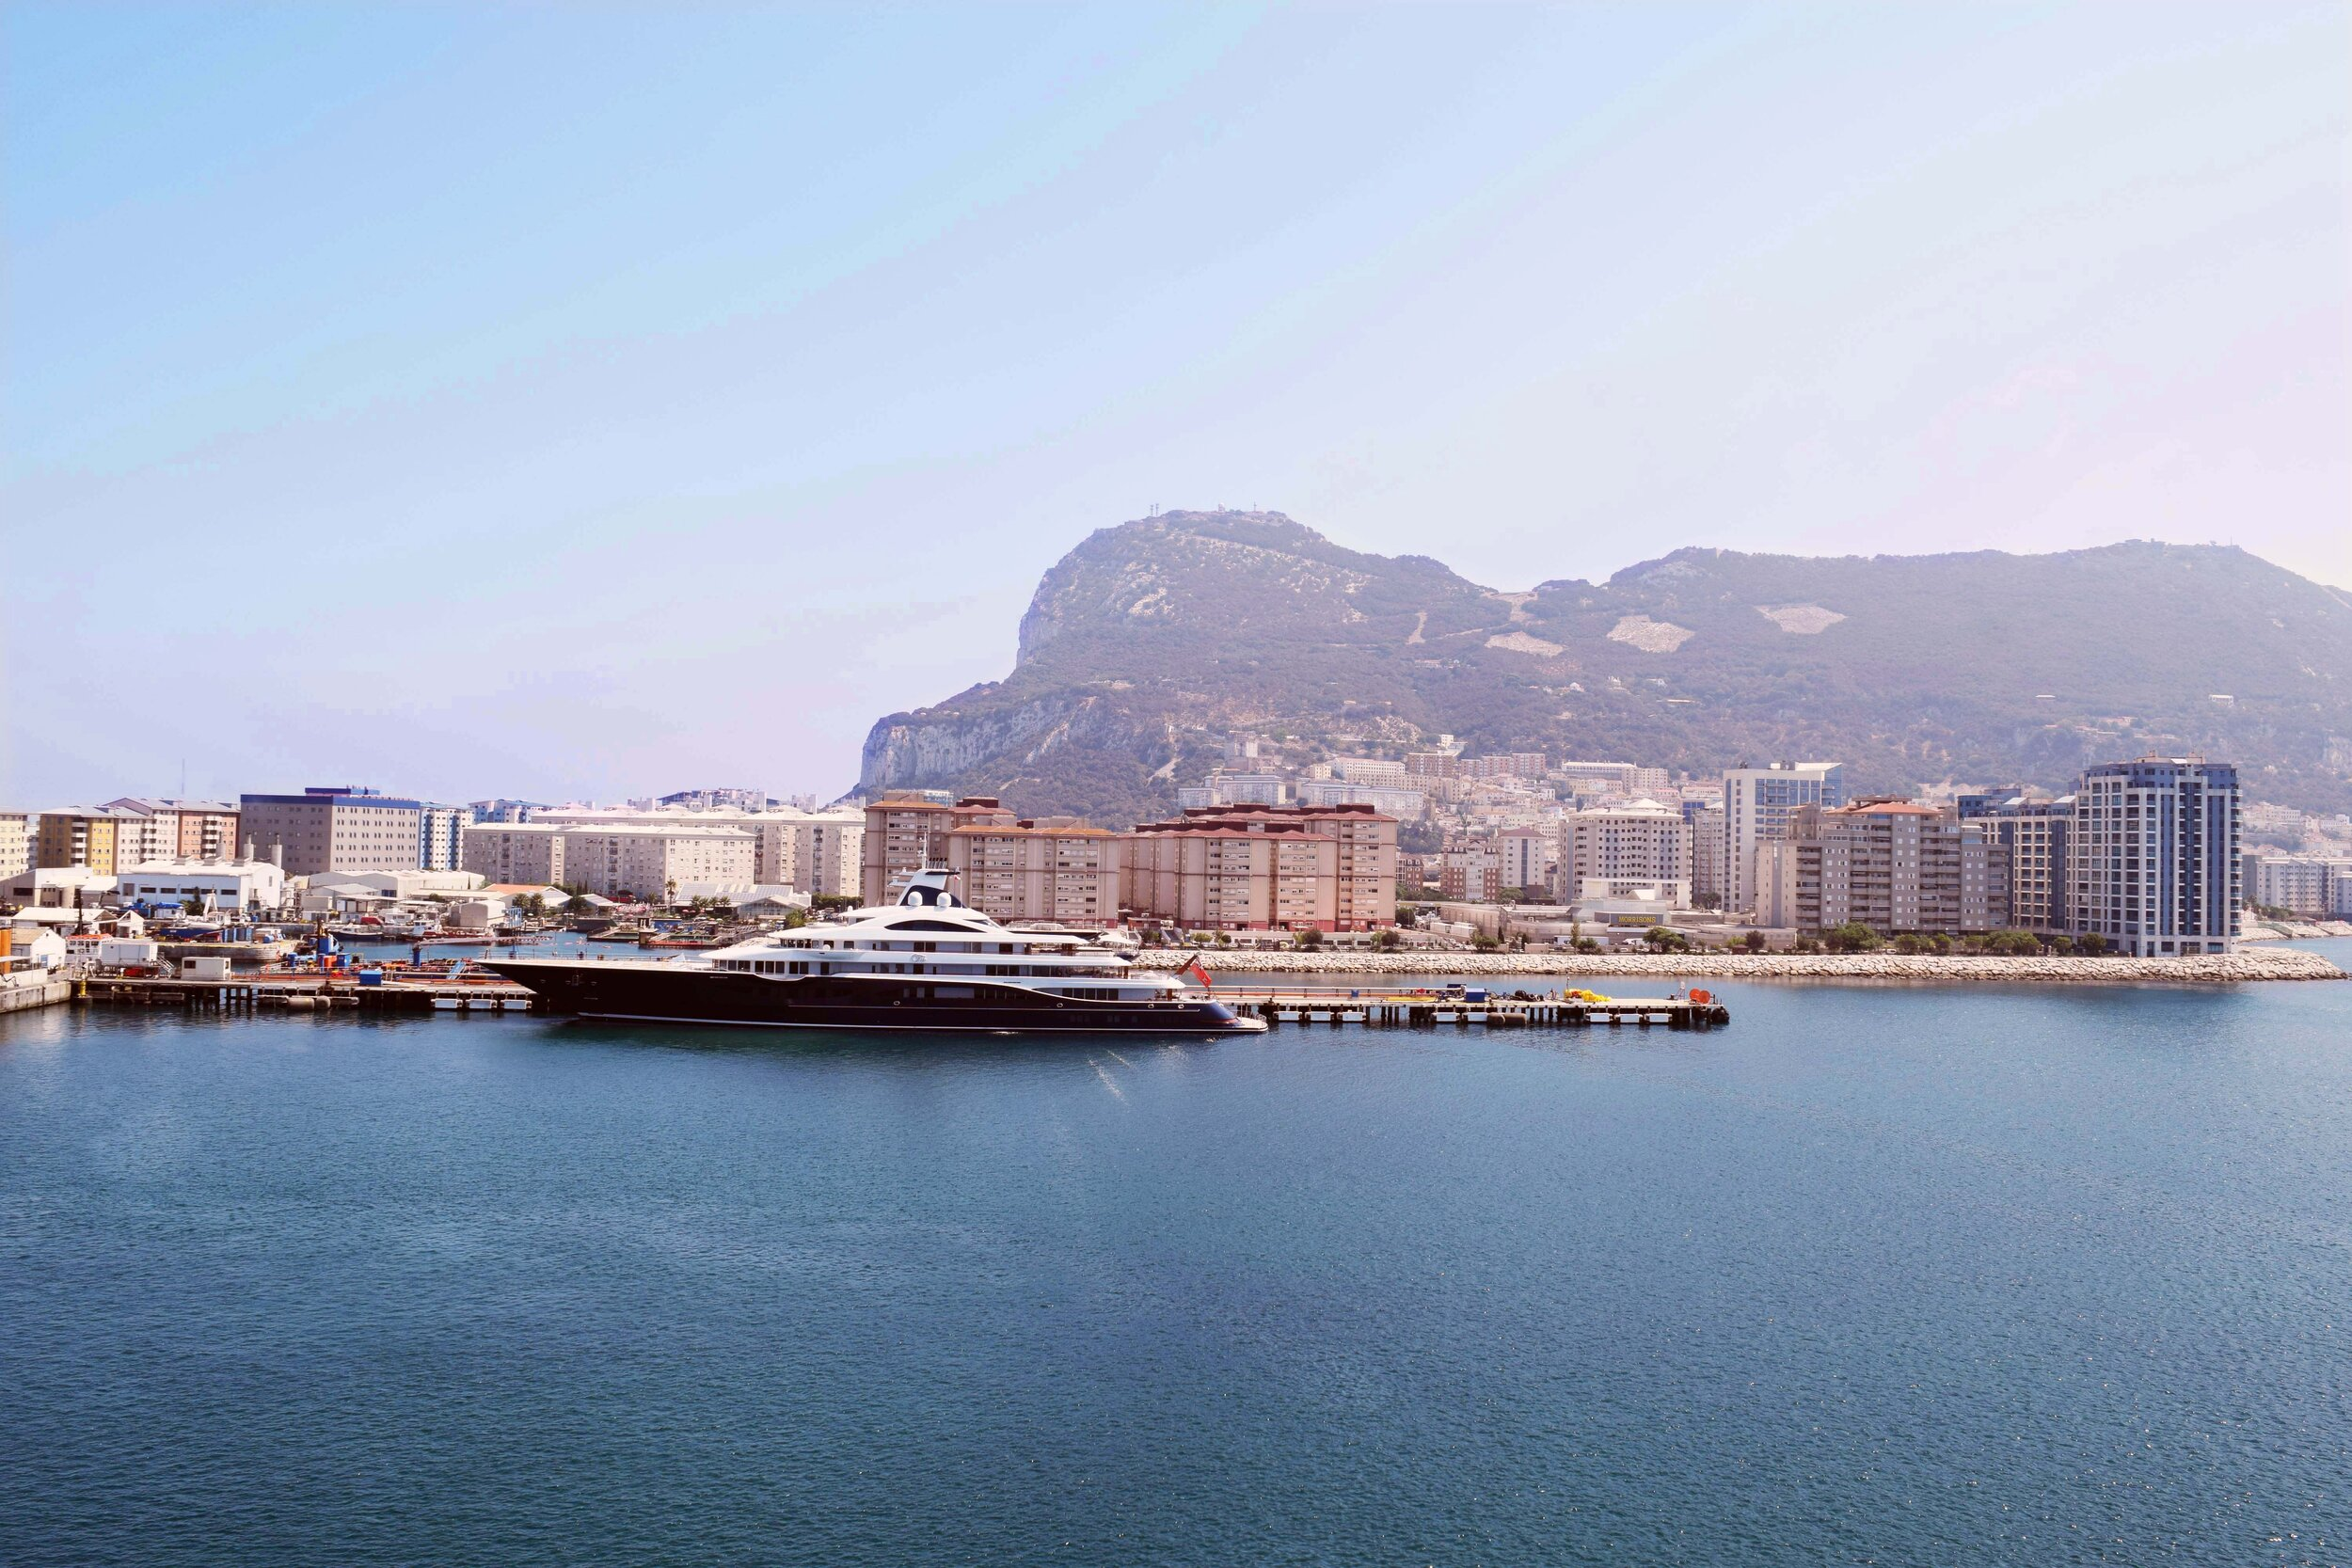 The view of The Rock of Gibraltar from the Emerald Princess cruise ship.